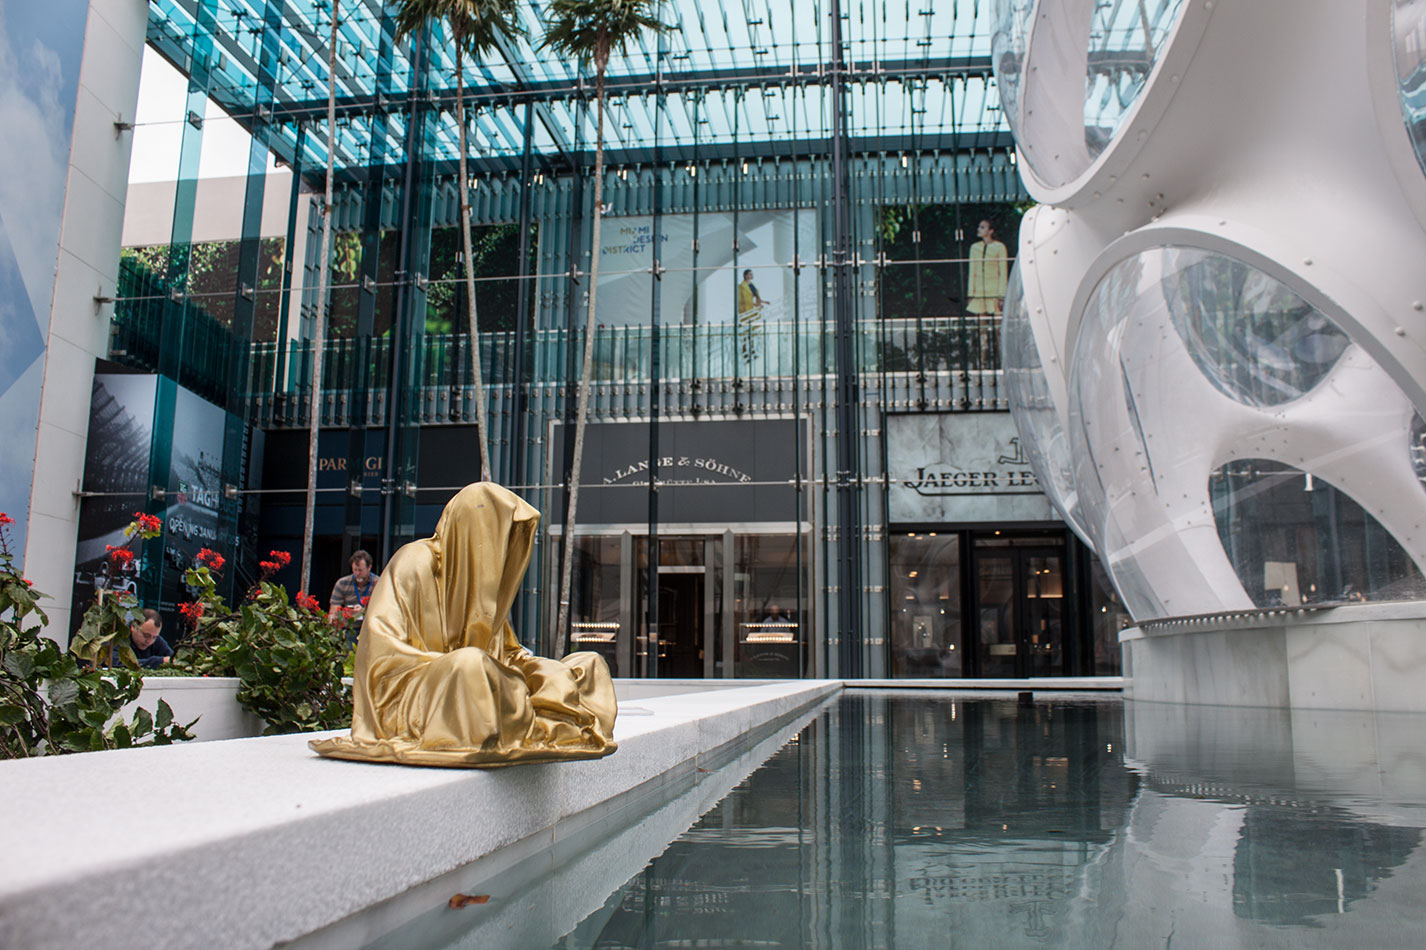 public-art-basel-miami-beach-fair-usa-florida-bass-museum-guardians-of-time-manfred-kili-kielnhofer-contemporary-fine-art-modern-arts-design-antiques-sculpture-6646